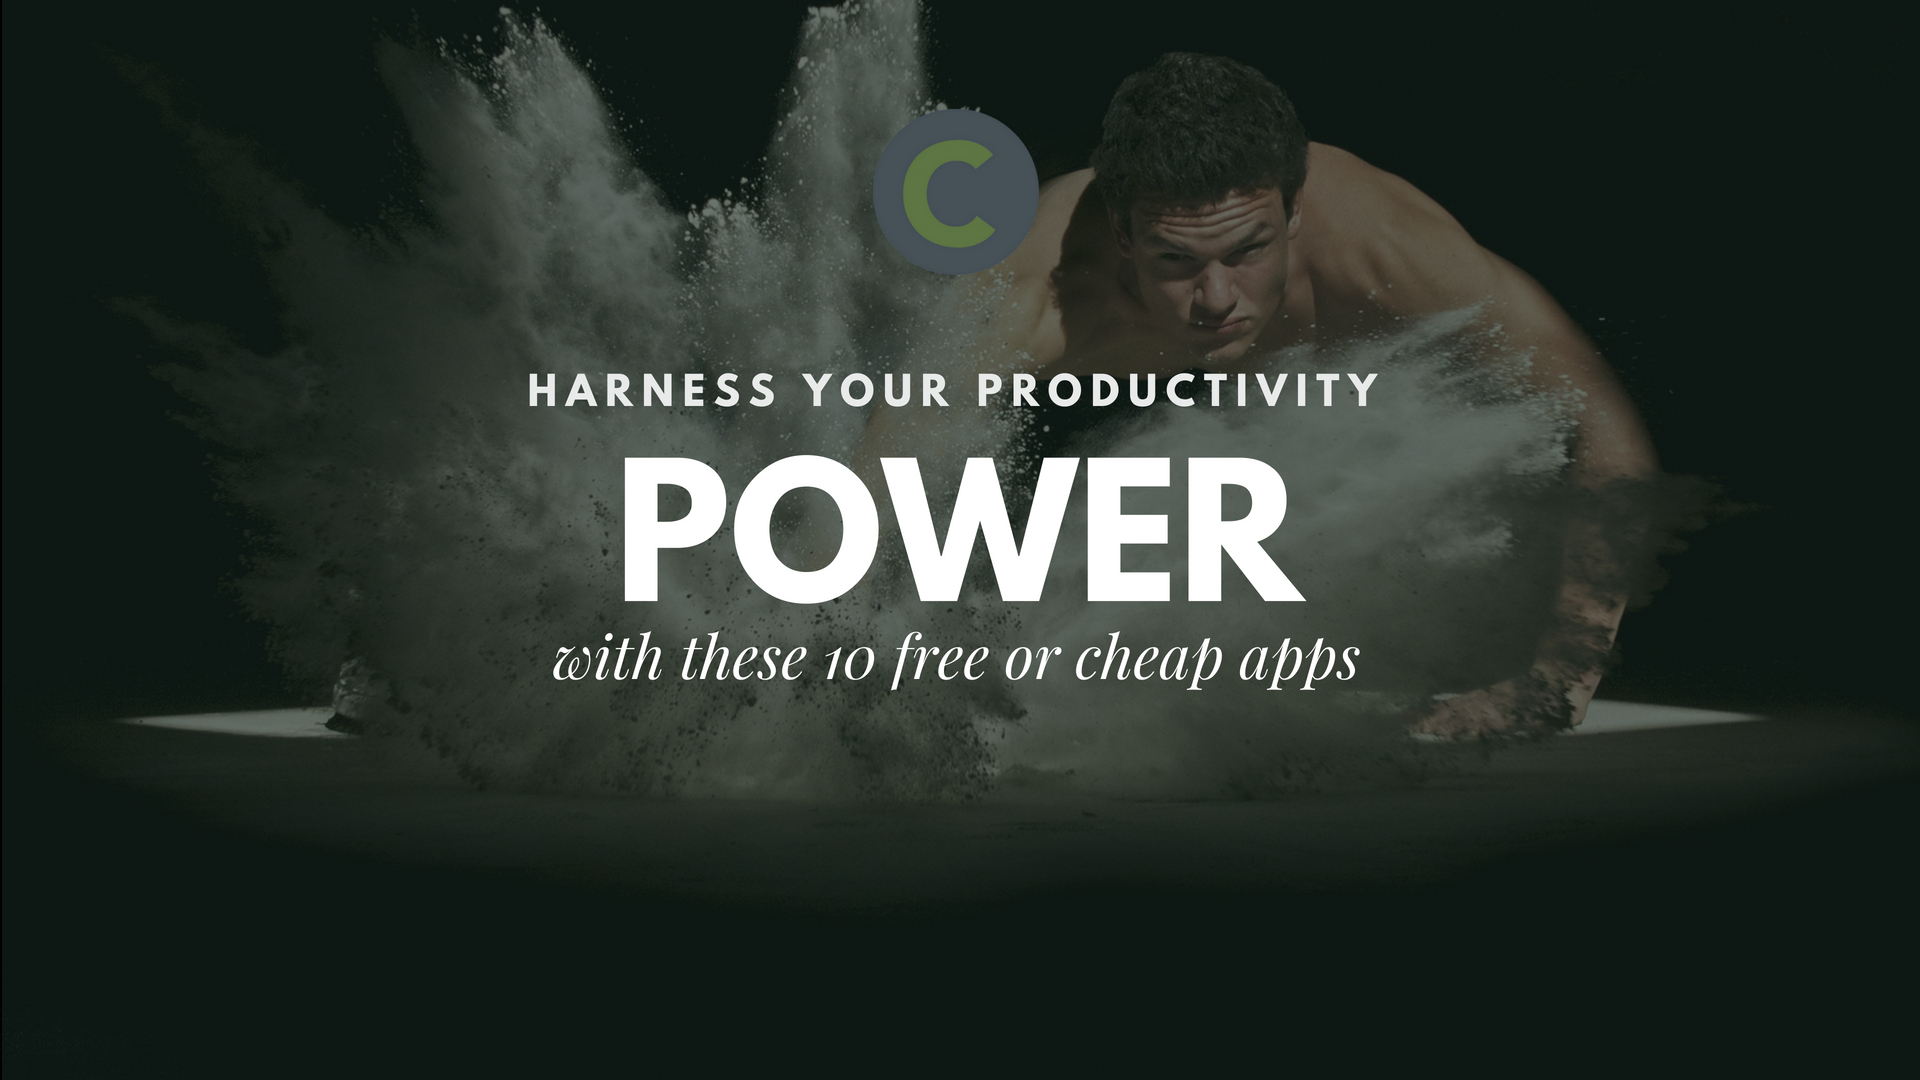 church planter harness your productivity